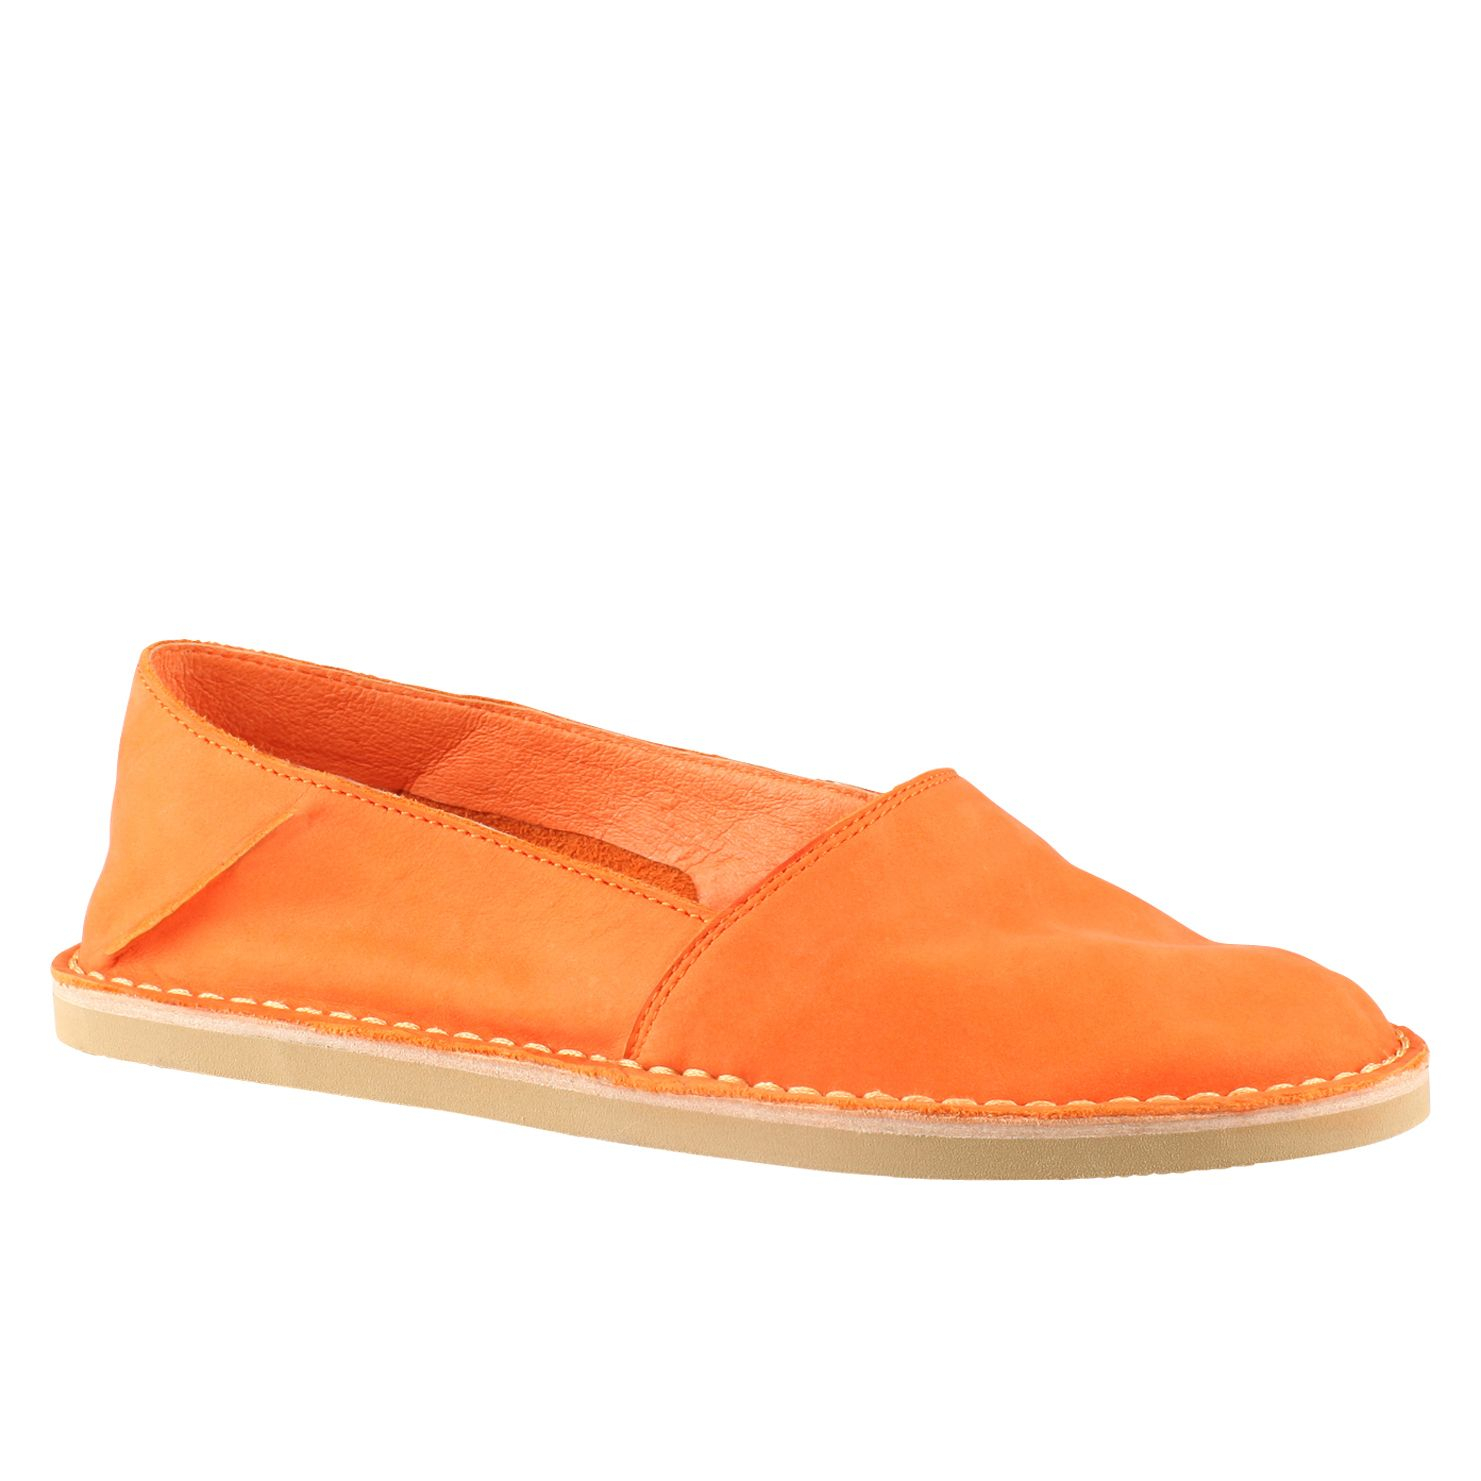 aldo archi slip on espadrille shoes in orange lyst